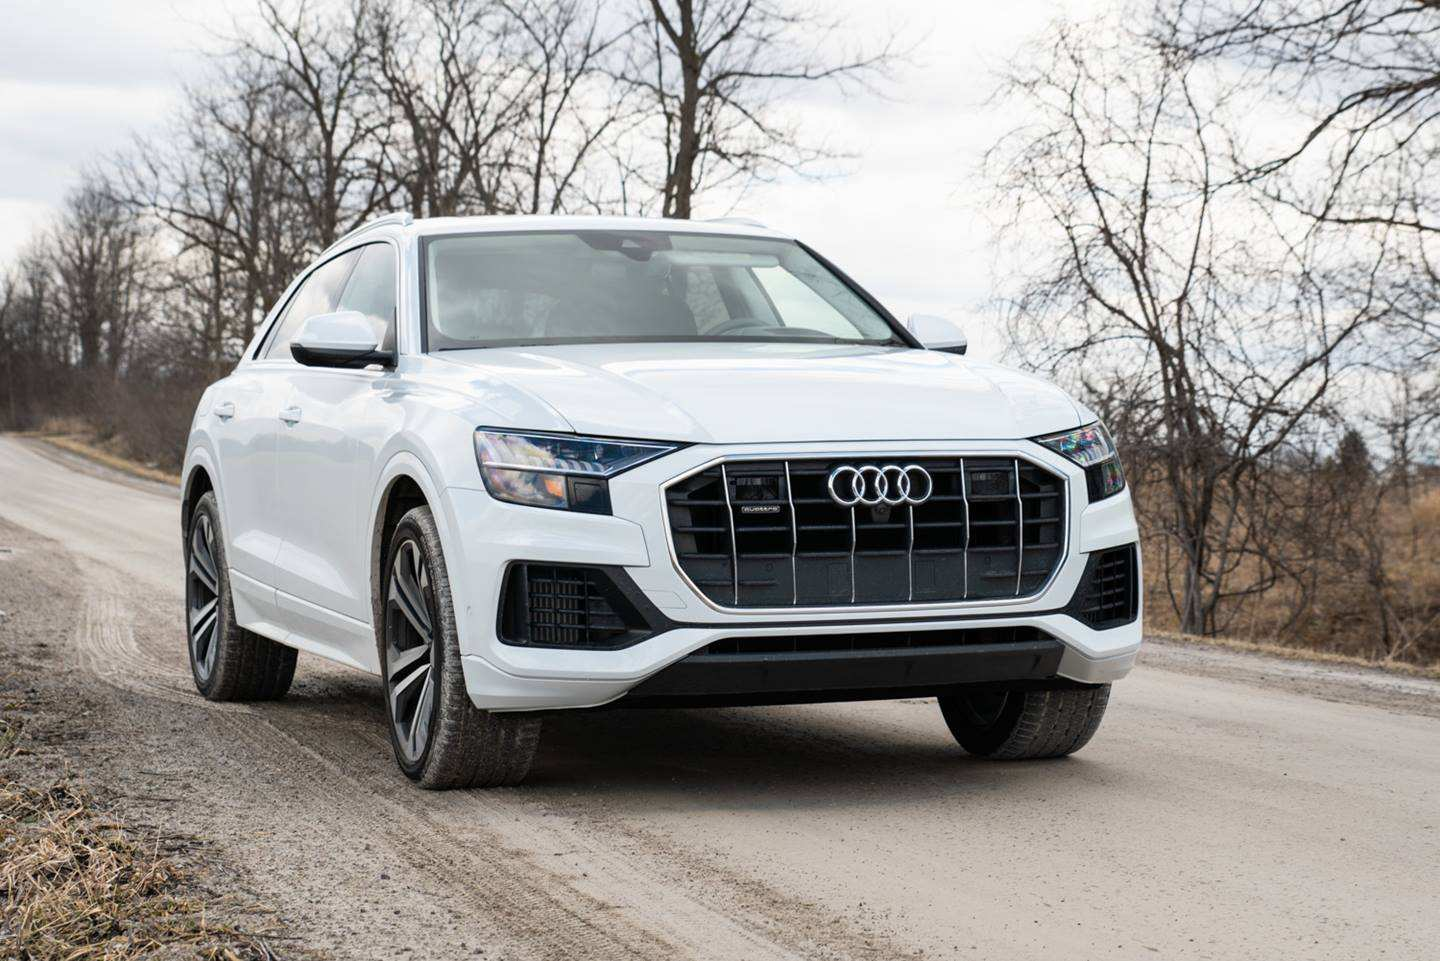 54 All New 2020 Audi Q8 Price Release by 2020 Audi Q8 Price